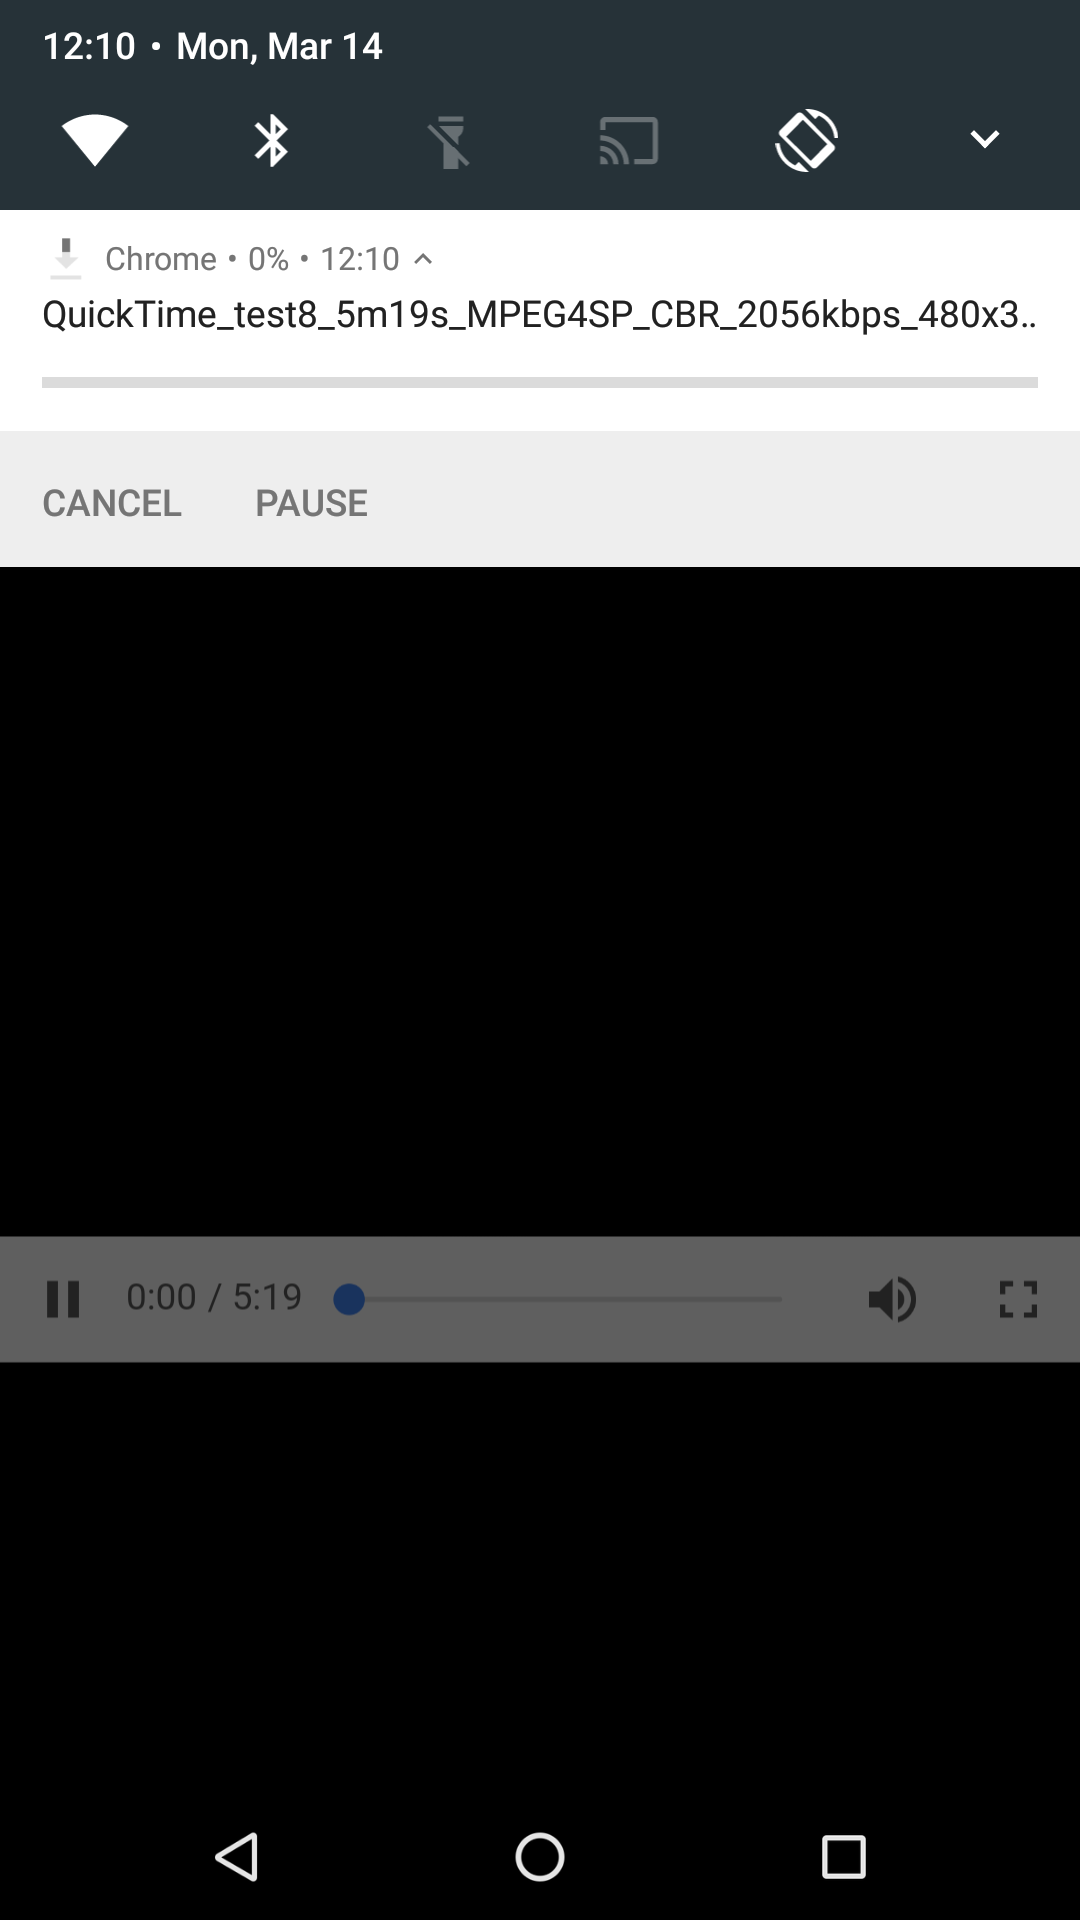 chrome 50 s built in downloader lets you pause and cancel